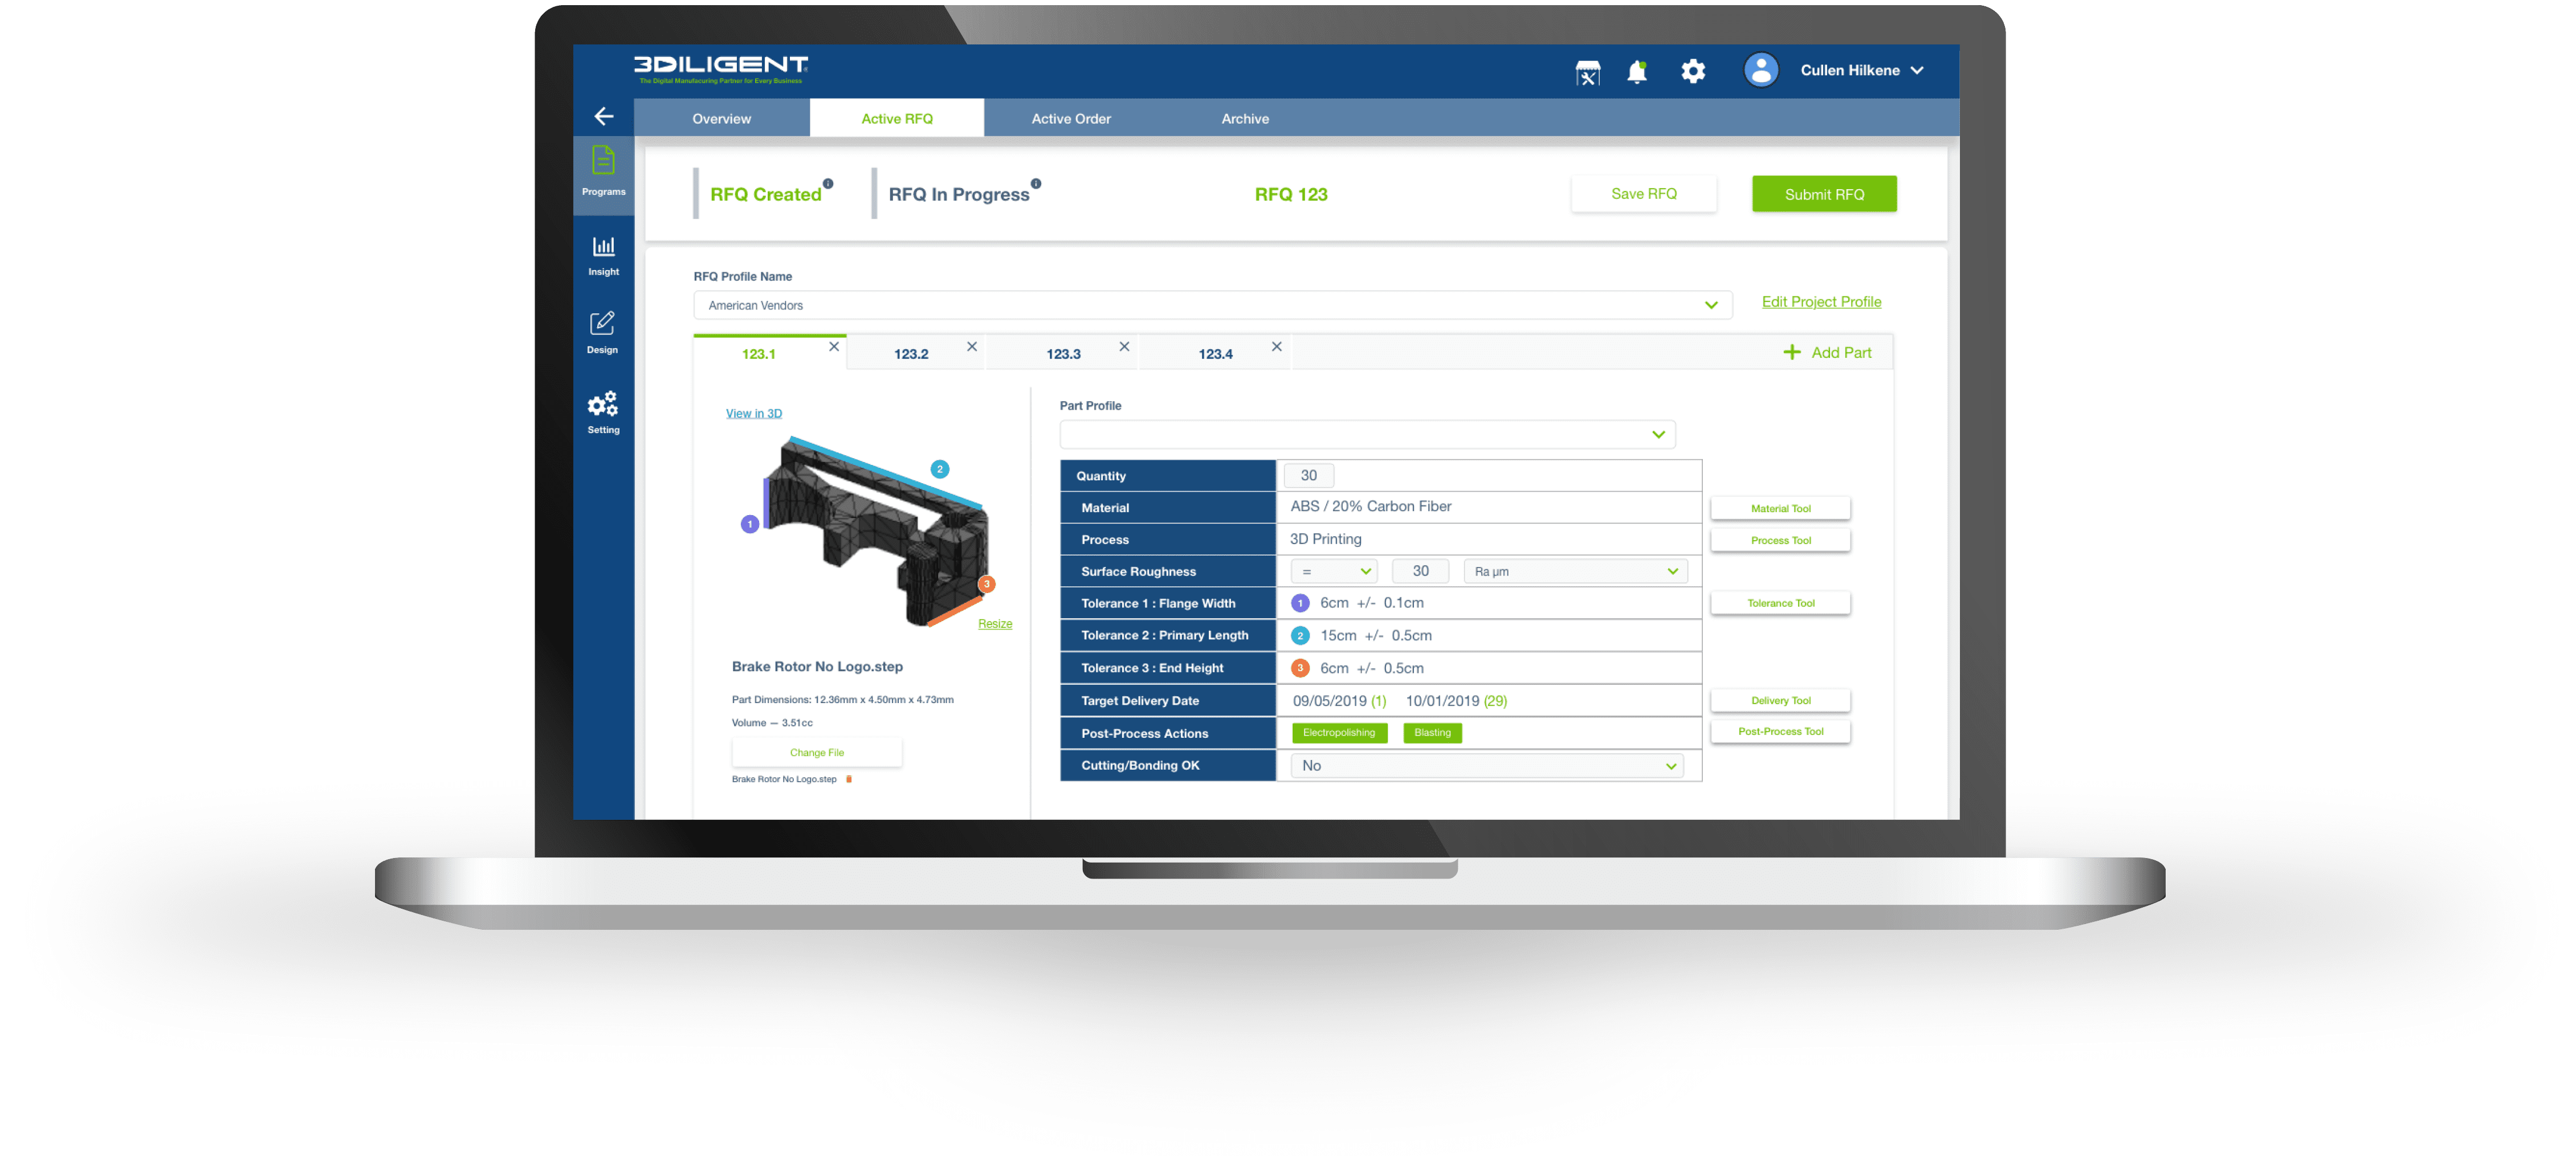 ProdEX connects engineers and buyers seekingcustom parts on-demand with manufacturers from around the world. Image via 3Diligent.